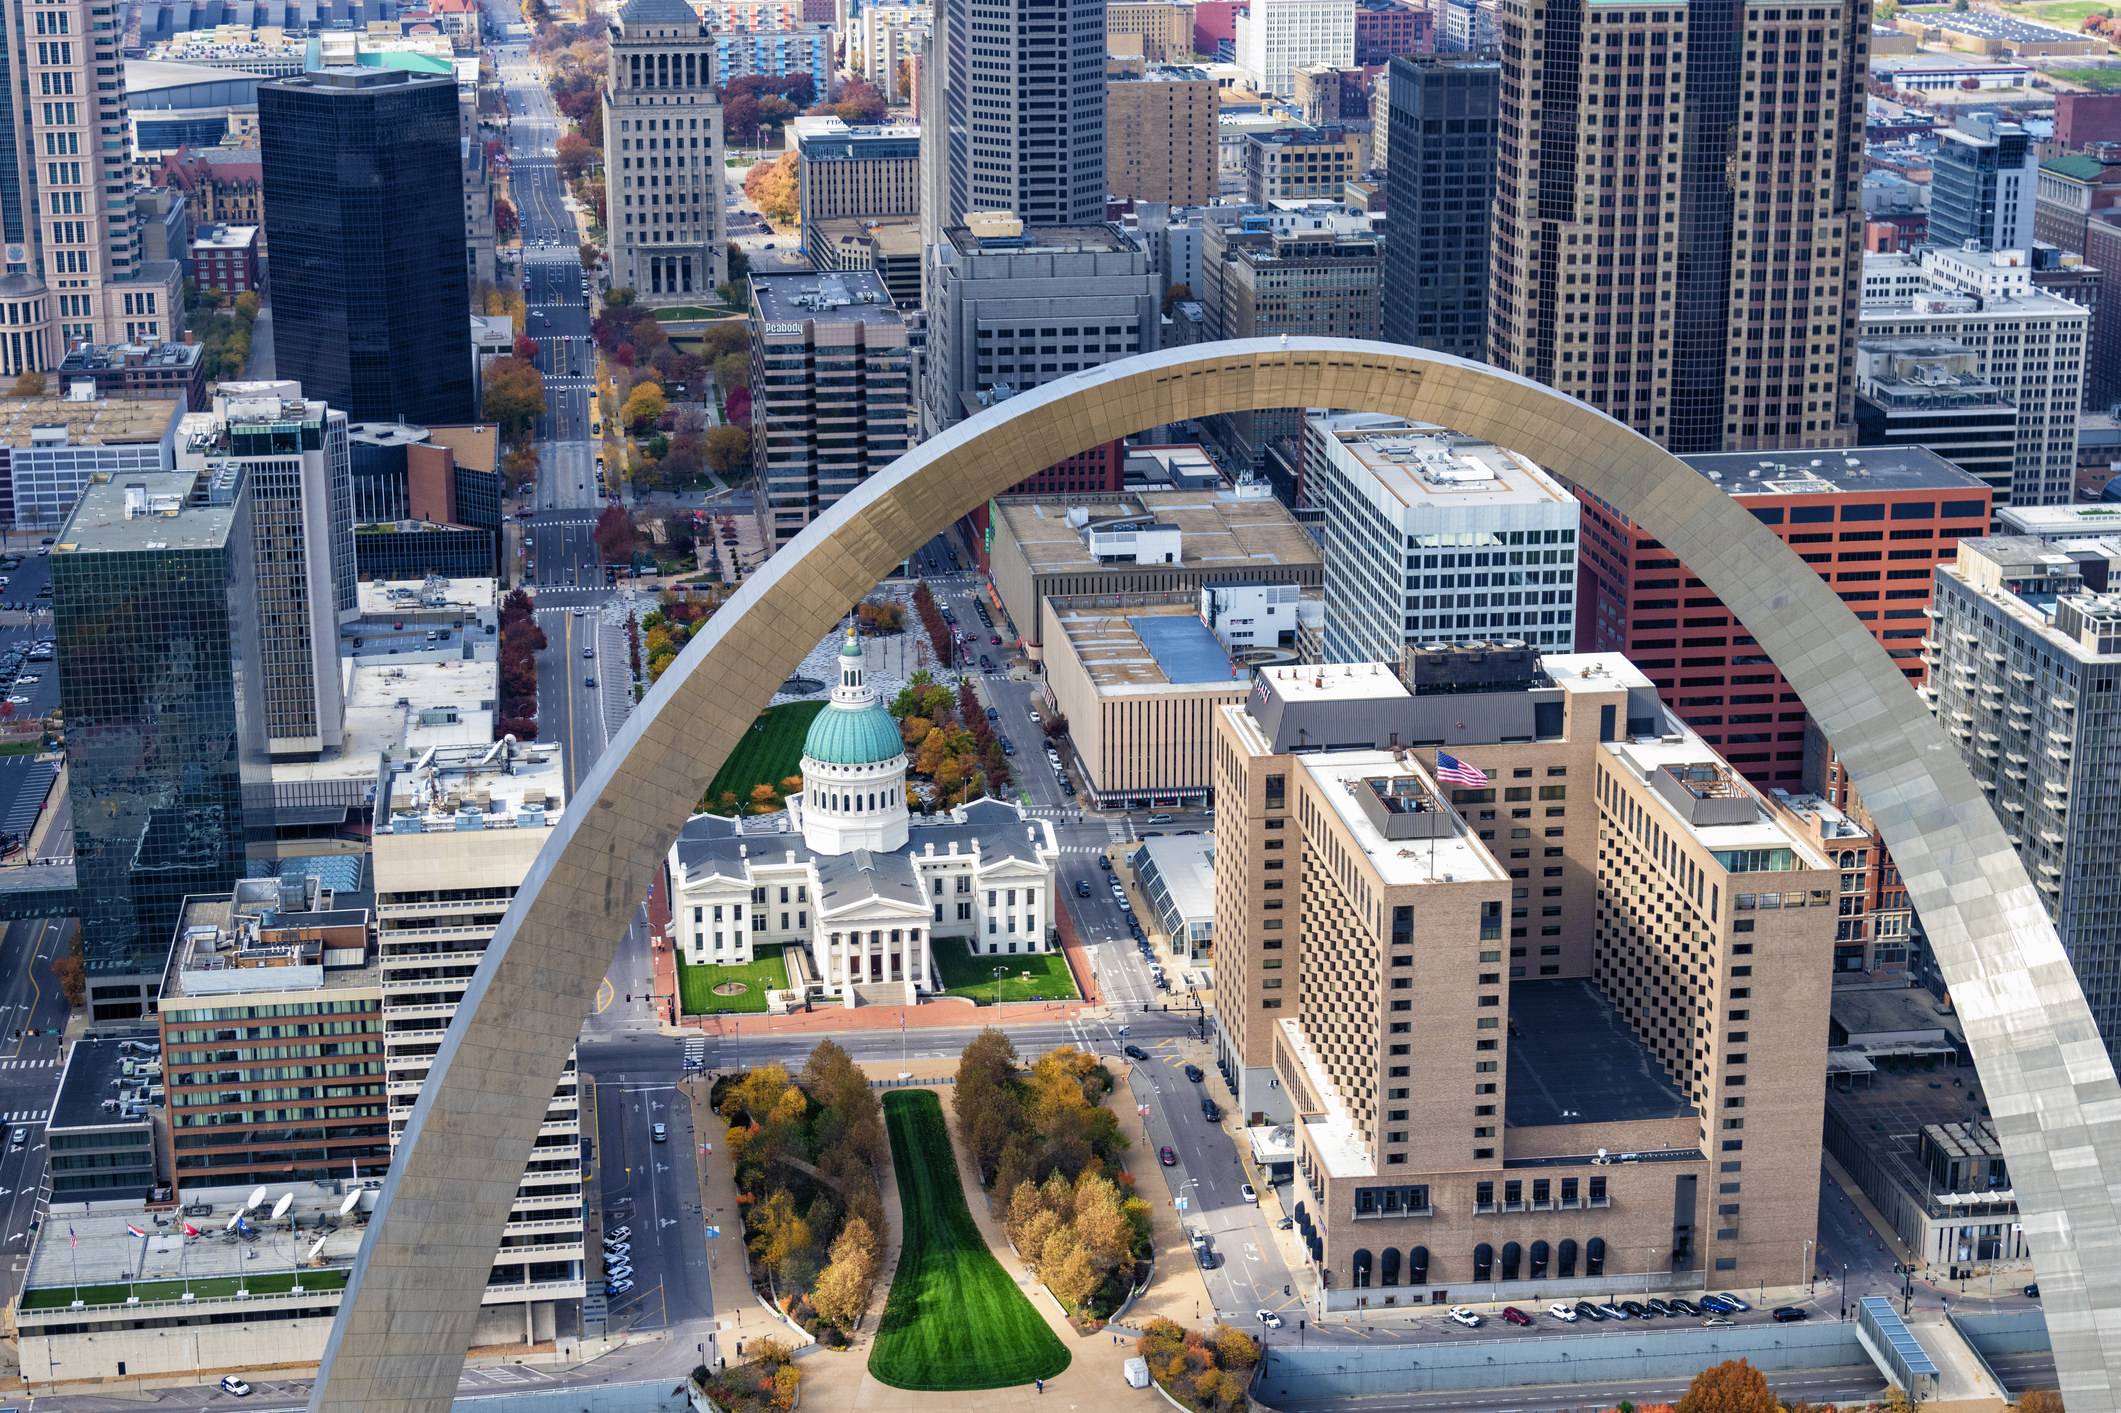 Downtown St. Louis with a view of the Arch.